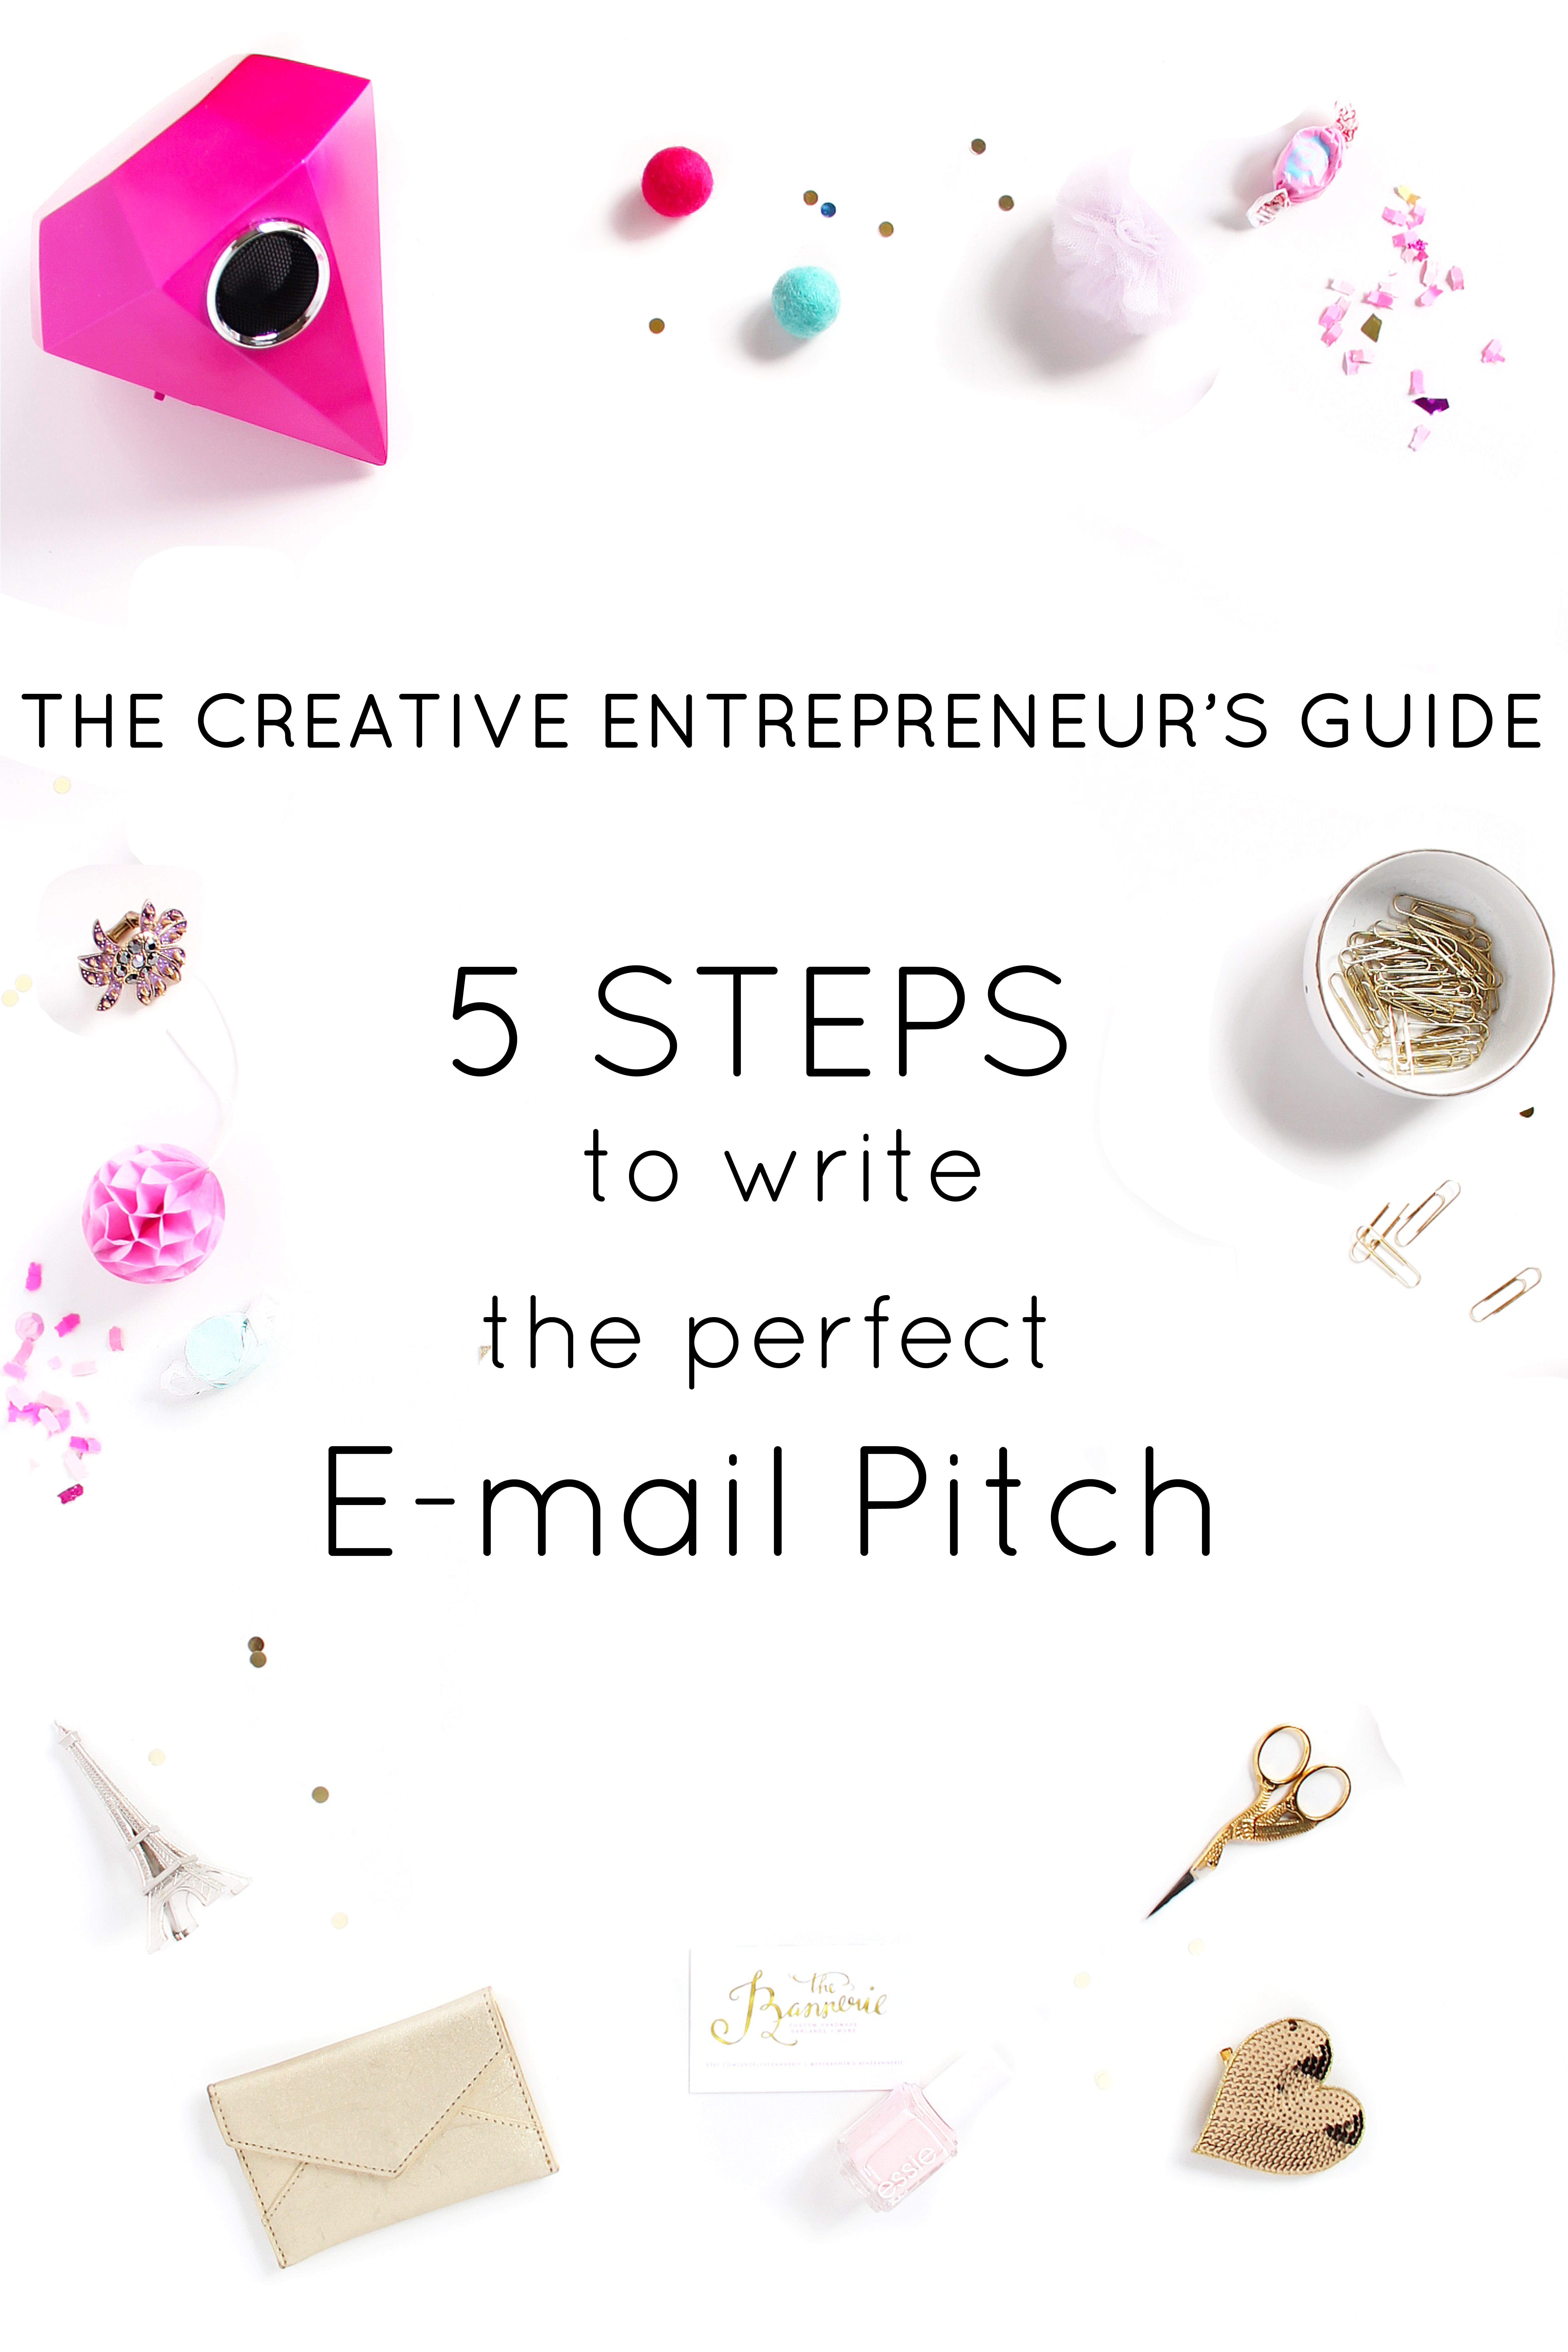 Online Business Ideen The Creative Entrepreneur 39s Guide The E Mail Pitch Best